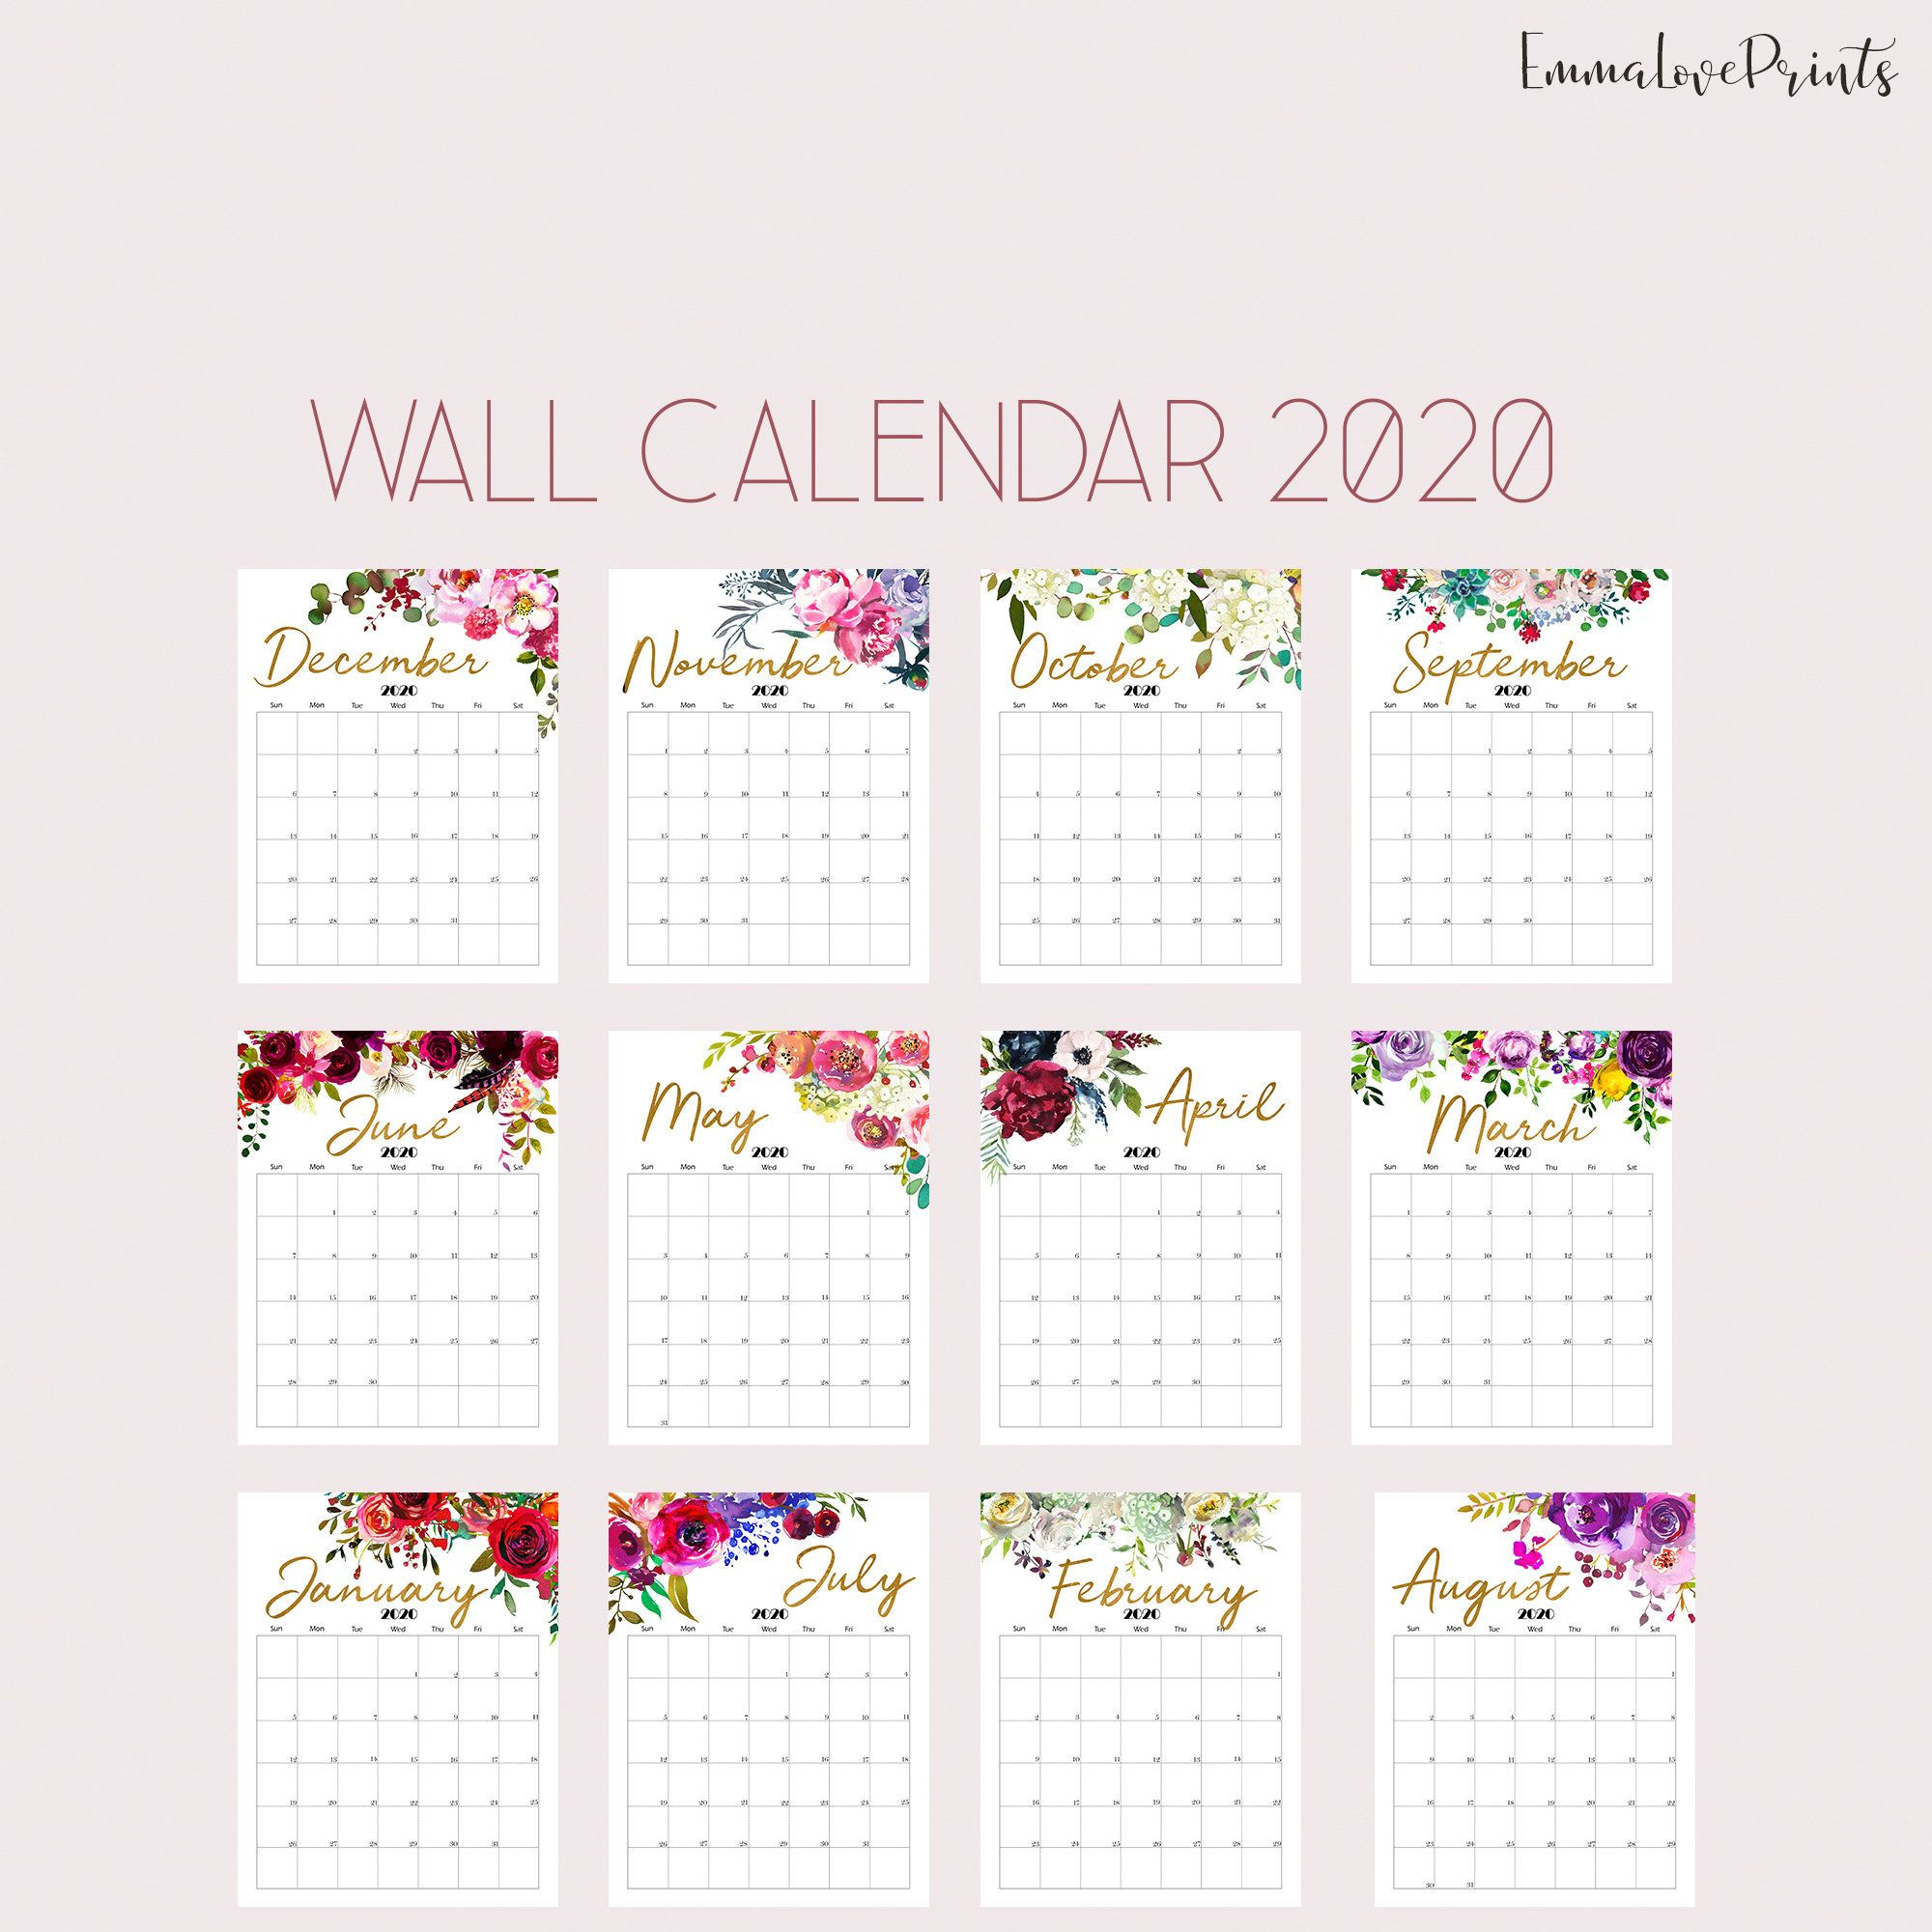 picture relating to Printable Calendar 2020 called Printable Calendar 2020 Wall Calendar 2020 Table Calendar